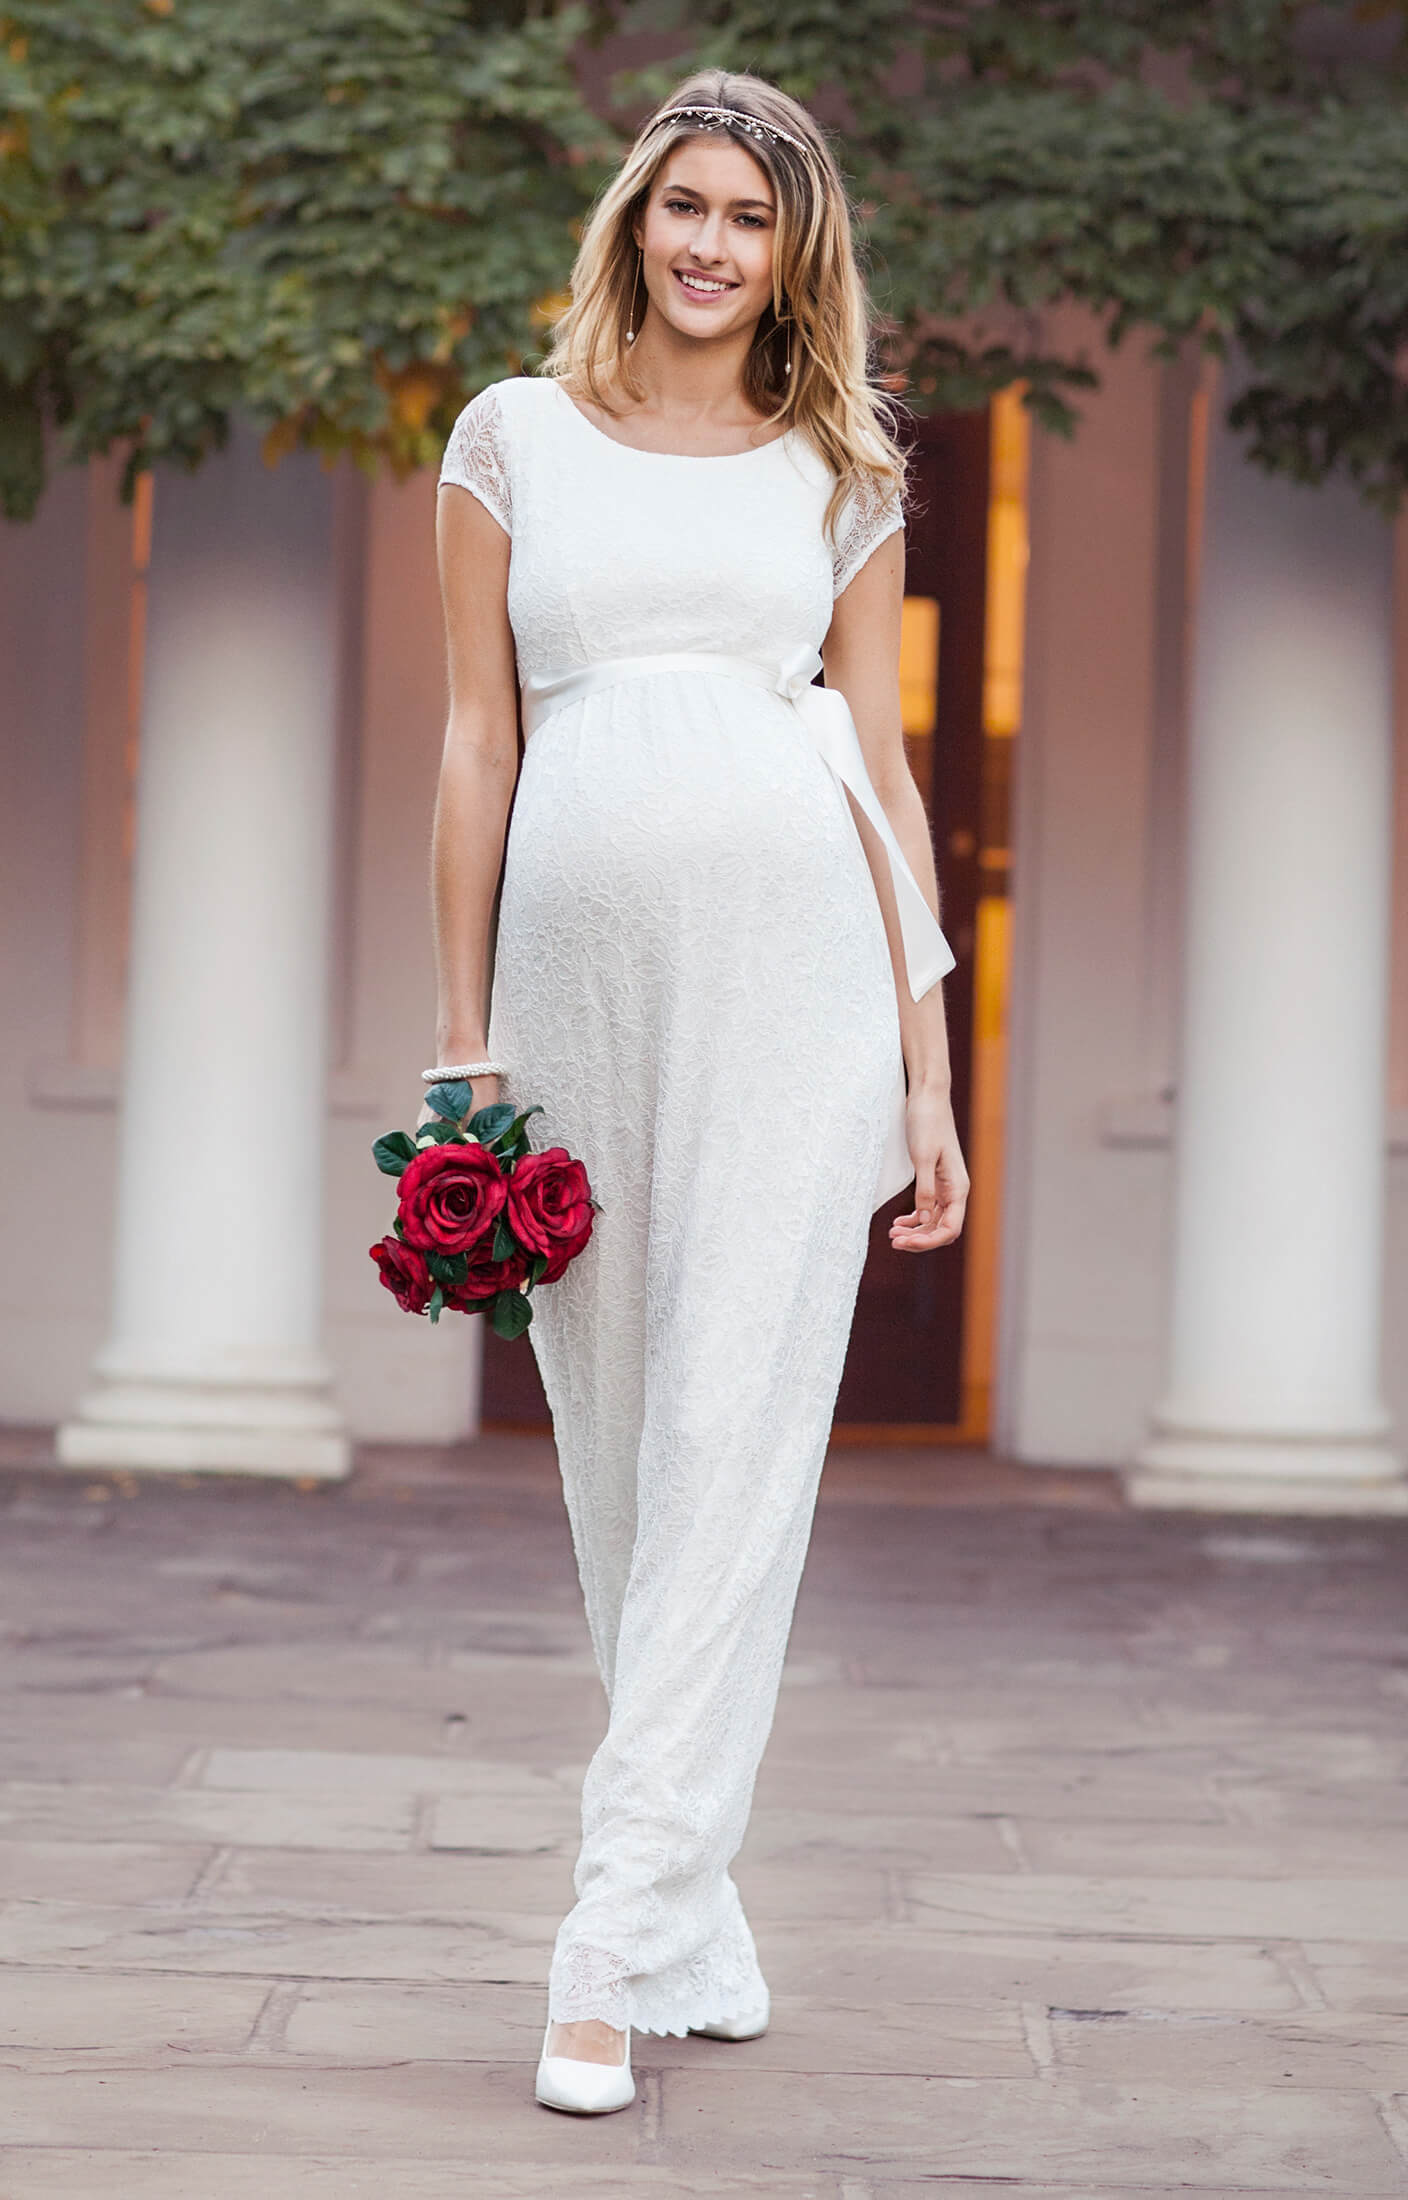 Emma maternity wedding gown long ivory maternity wedding dresses emma maternity wedding gown long ivory maternity wedding dresses evening wear and party clothes by tiffany rose no ombrellifo Choice Image